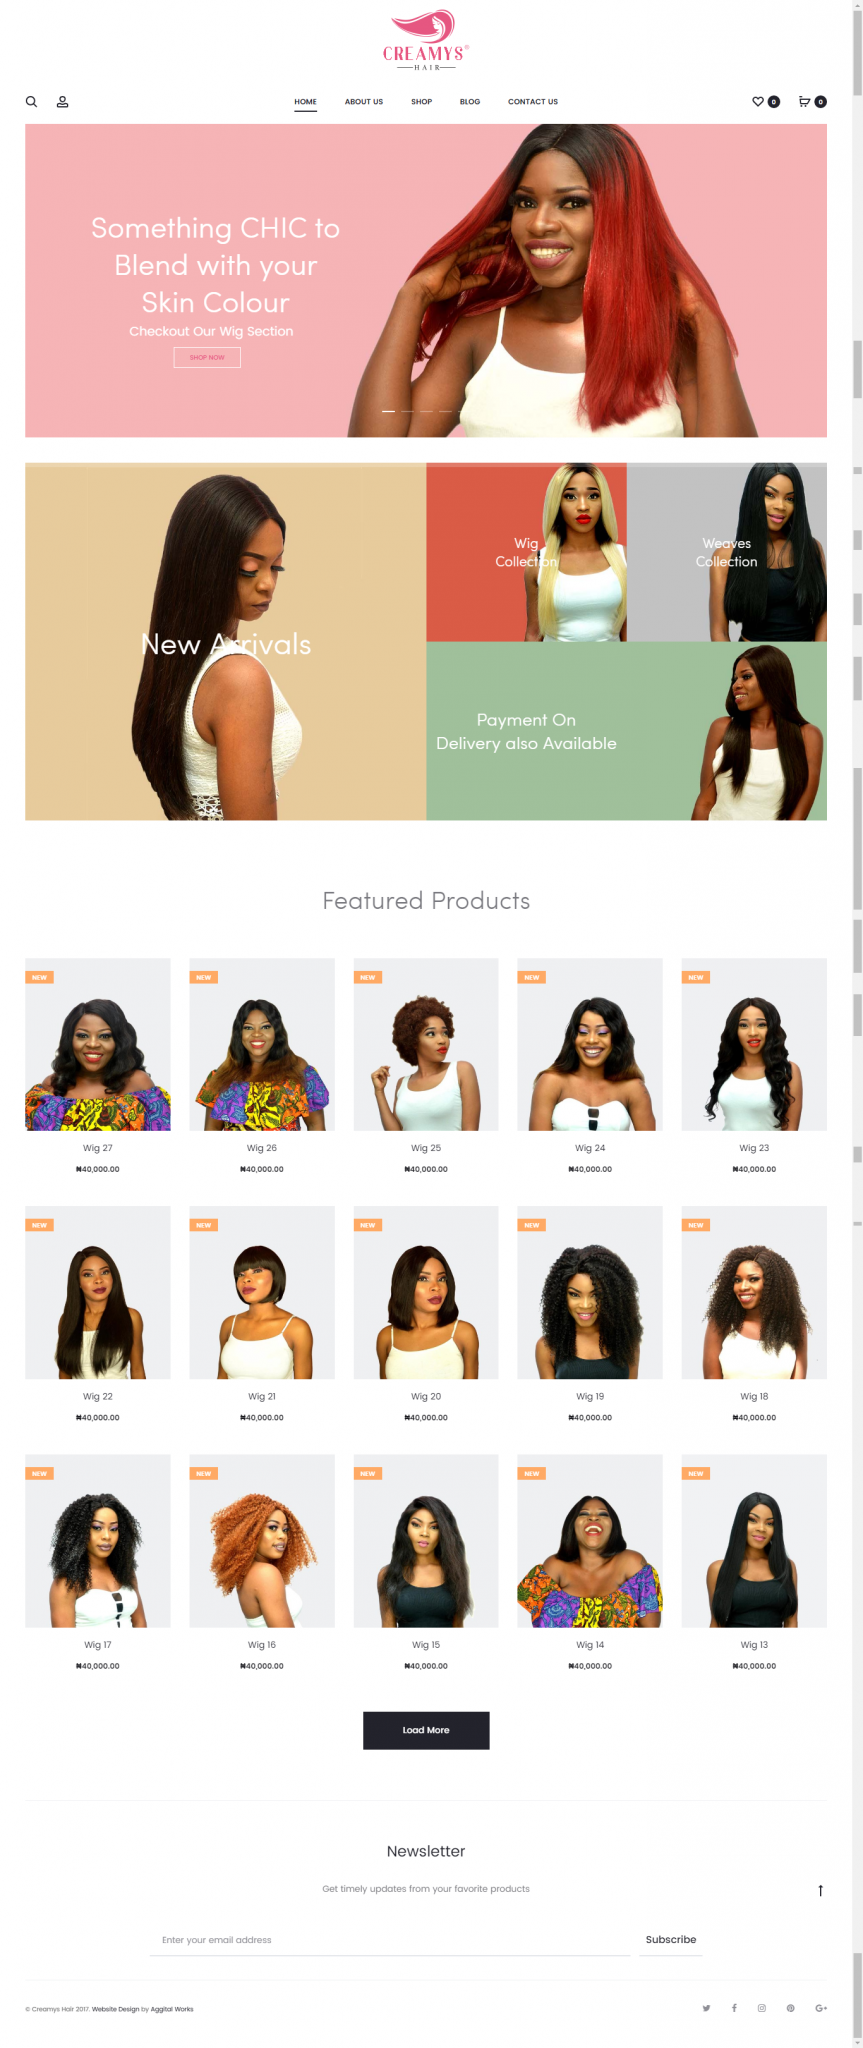 Creamy's Hair Website Design and Development